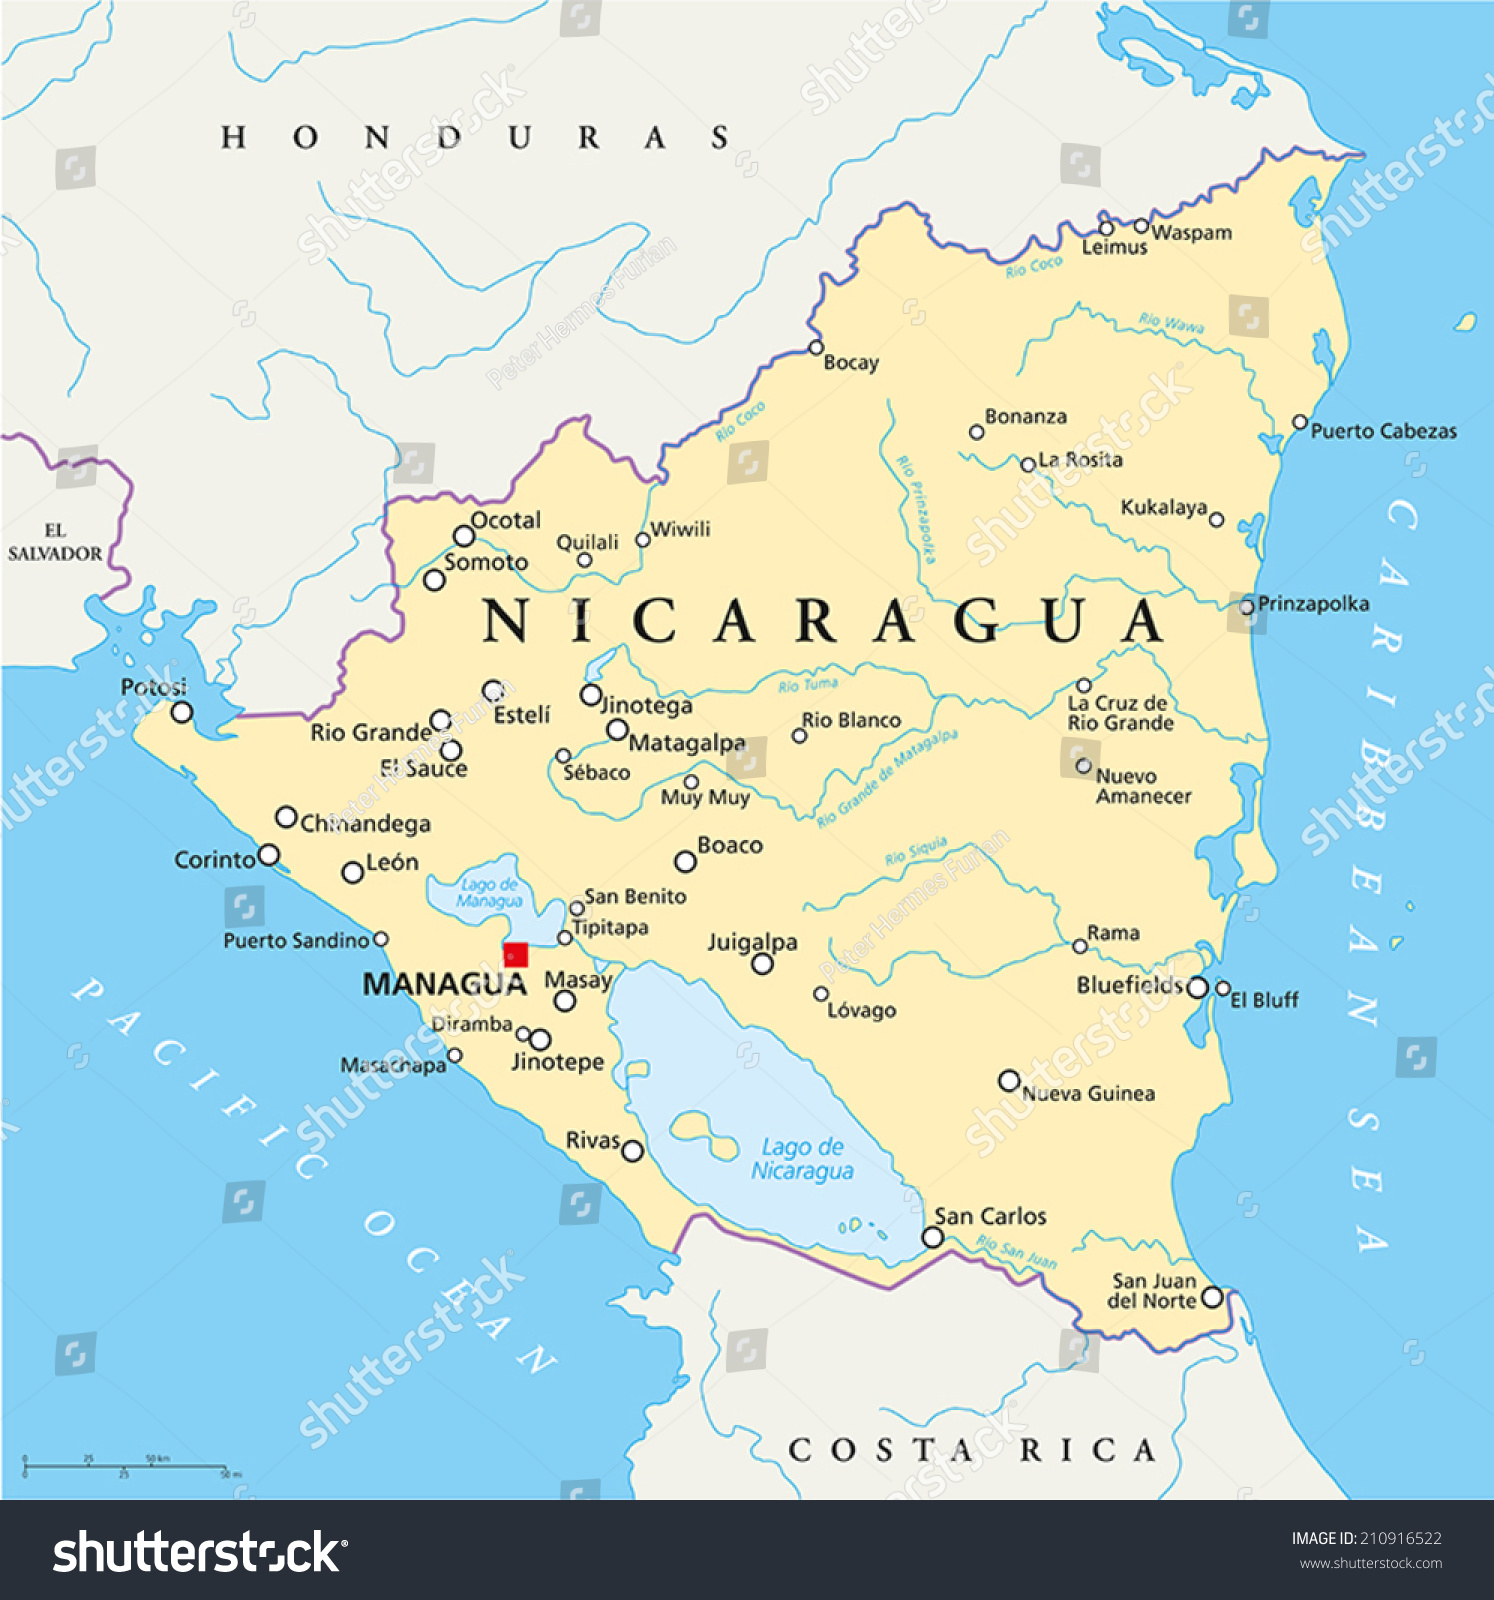 Nicaragua Political Map With Capital Managua, With National Borders, Most  Important Cities, Rivers